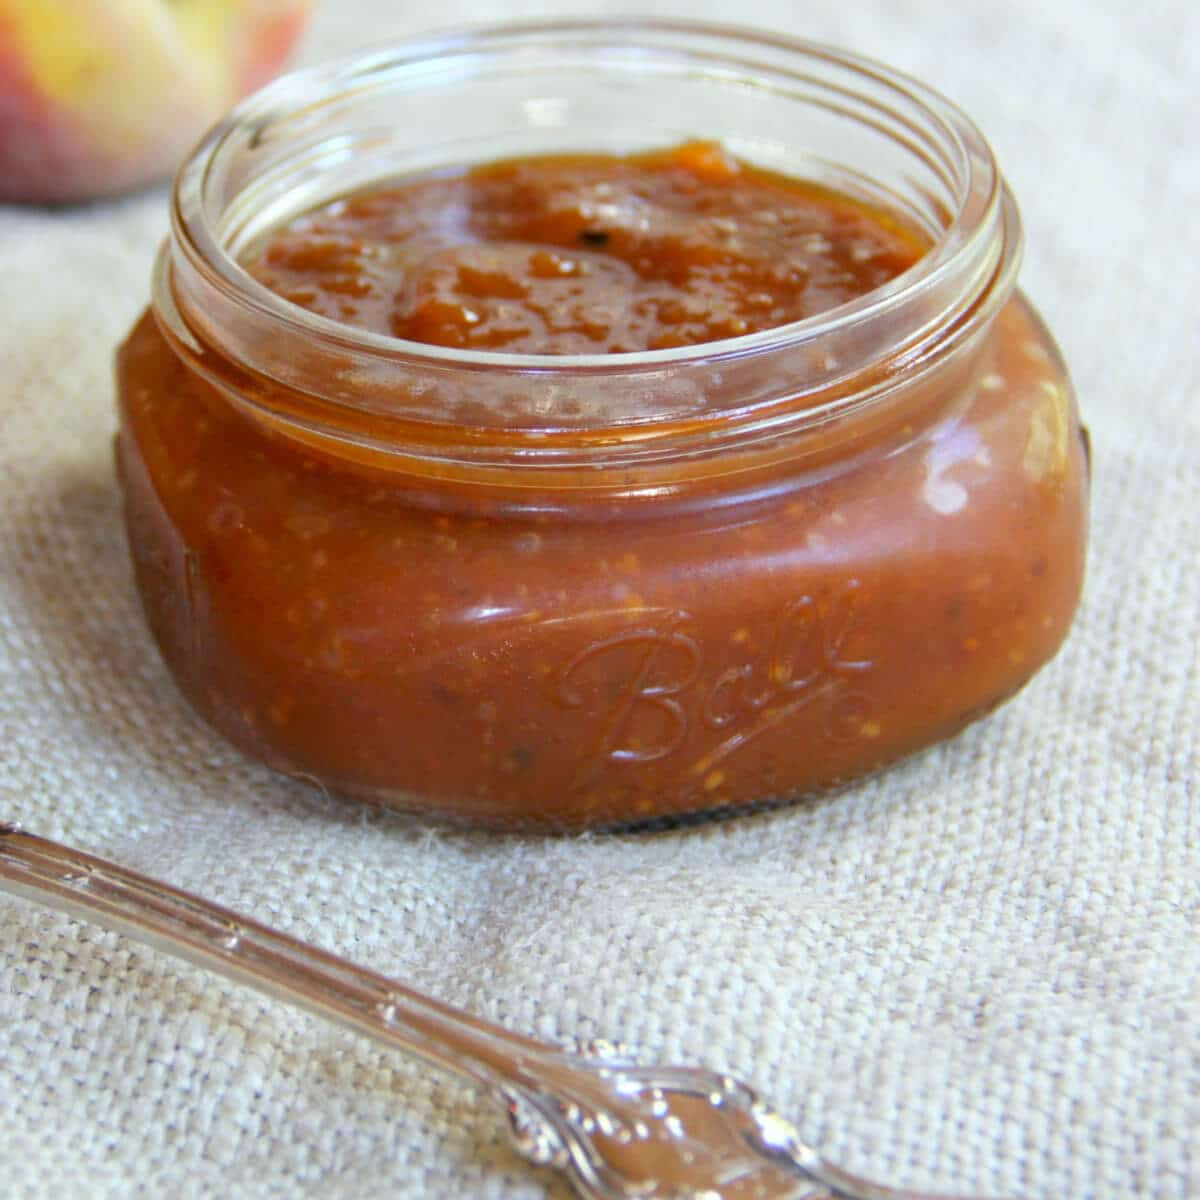 Peach BBQ Sauce with Bourbon is sweet and tangy, flavored with jalapeno pepper and sweet onion. This sauce is great slathered on chicken, pork chops, ribs, or even grilled salmon.